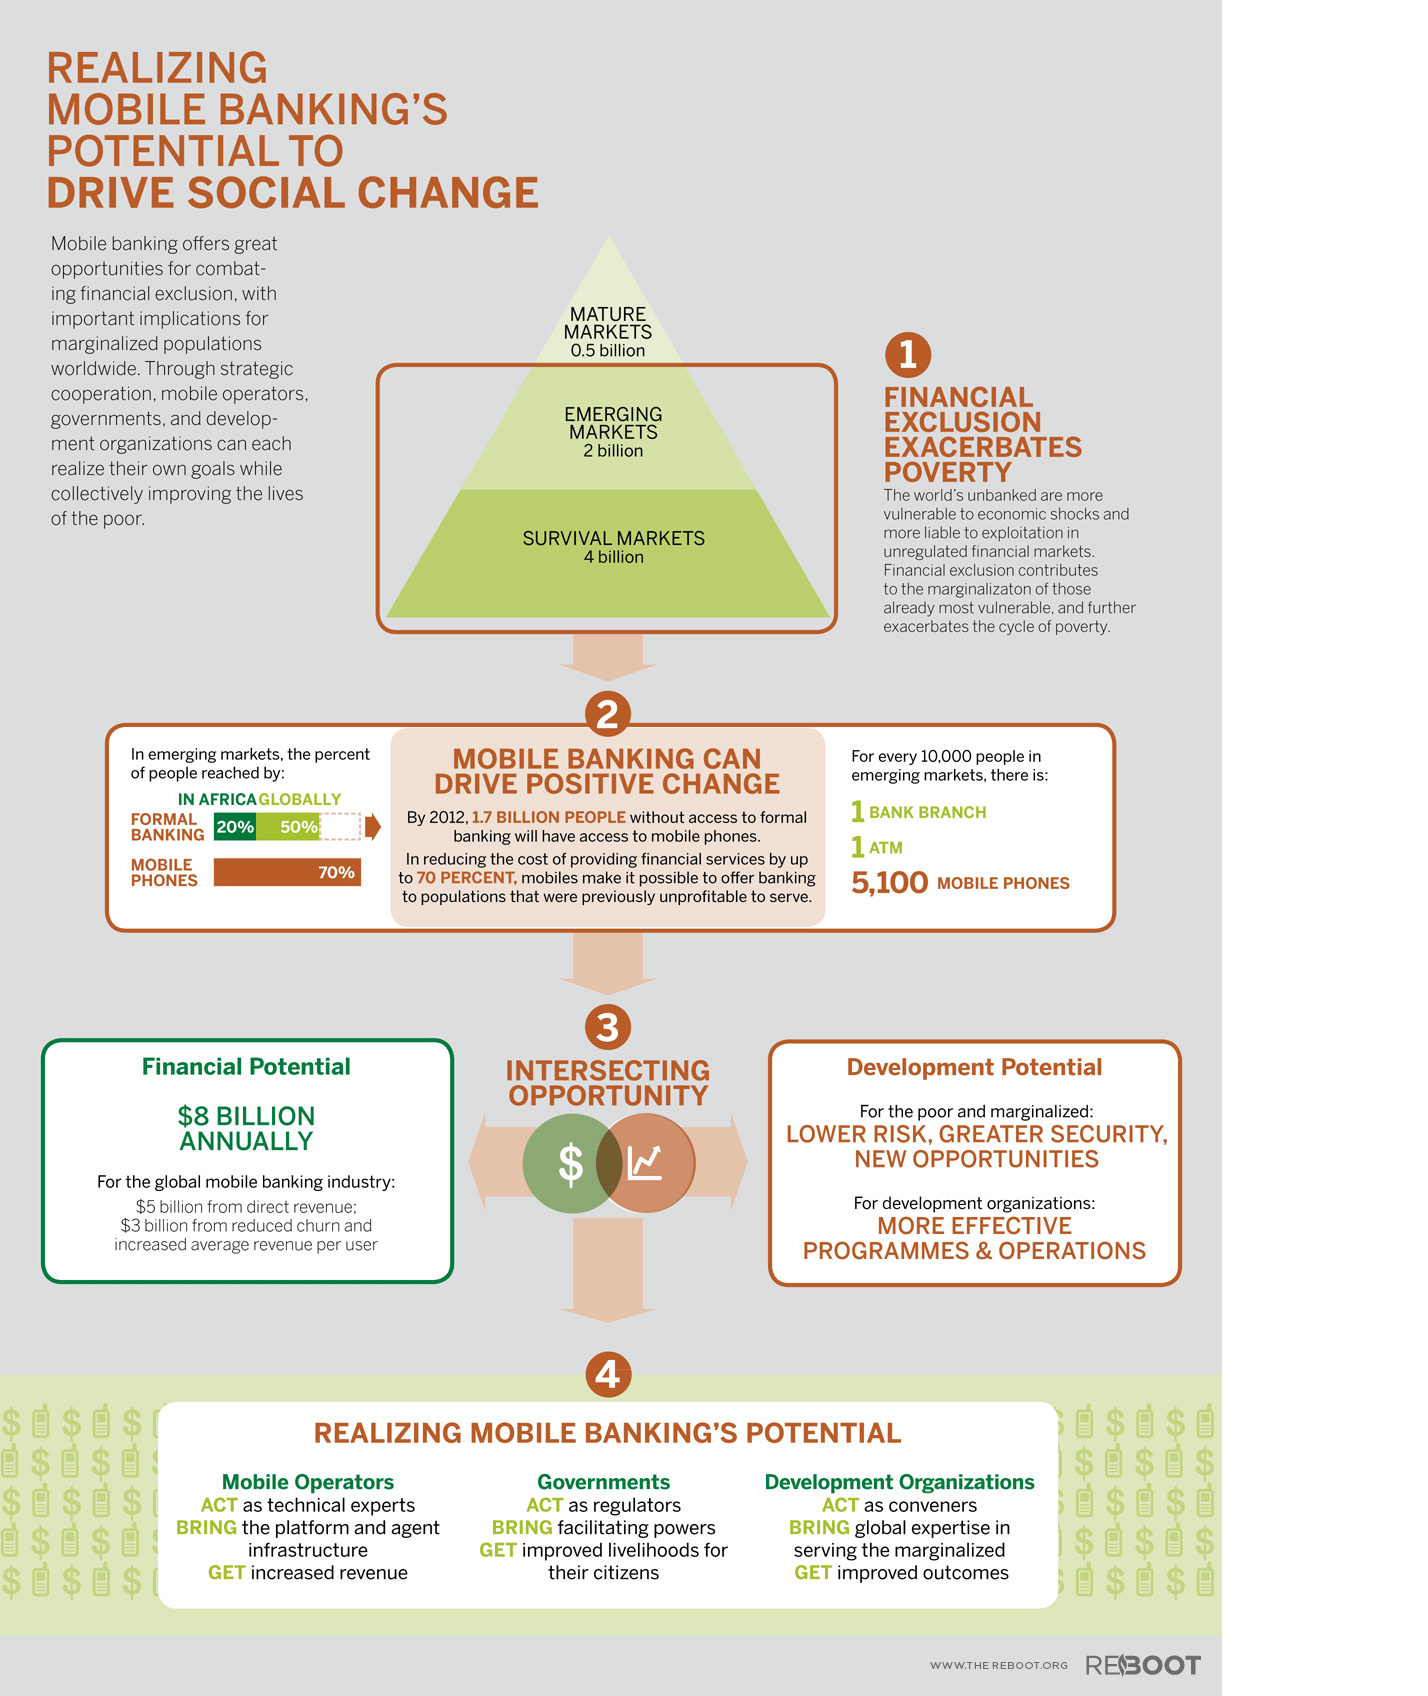 realizing-mobile-bankings-potential-to-drive-social-change_5040ea05bbc5f